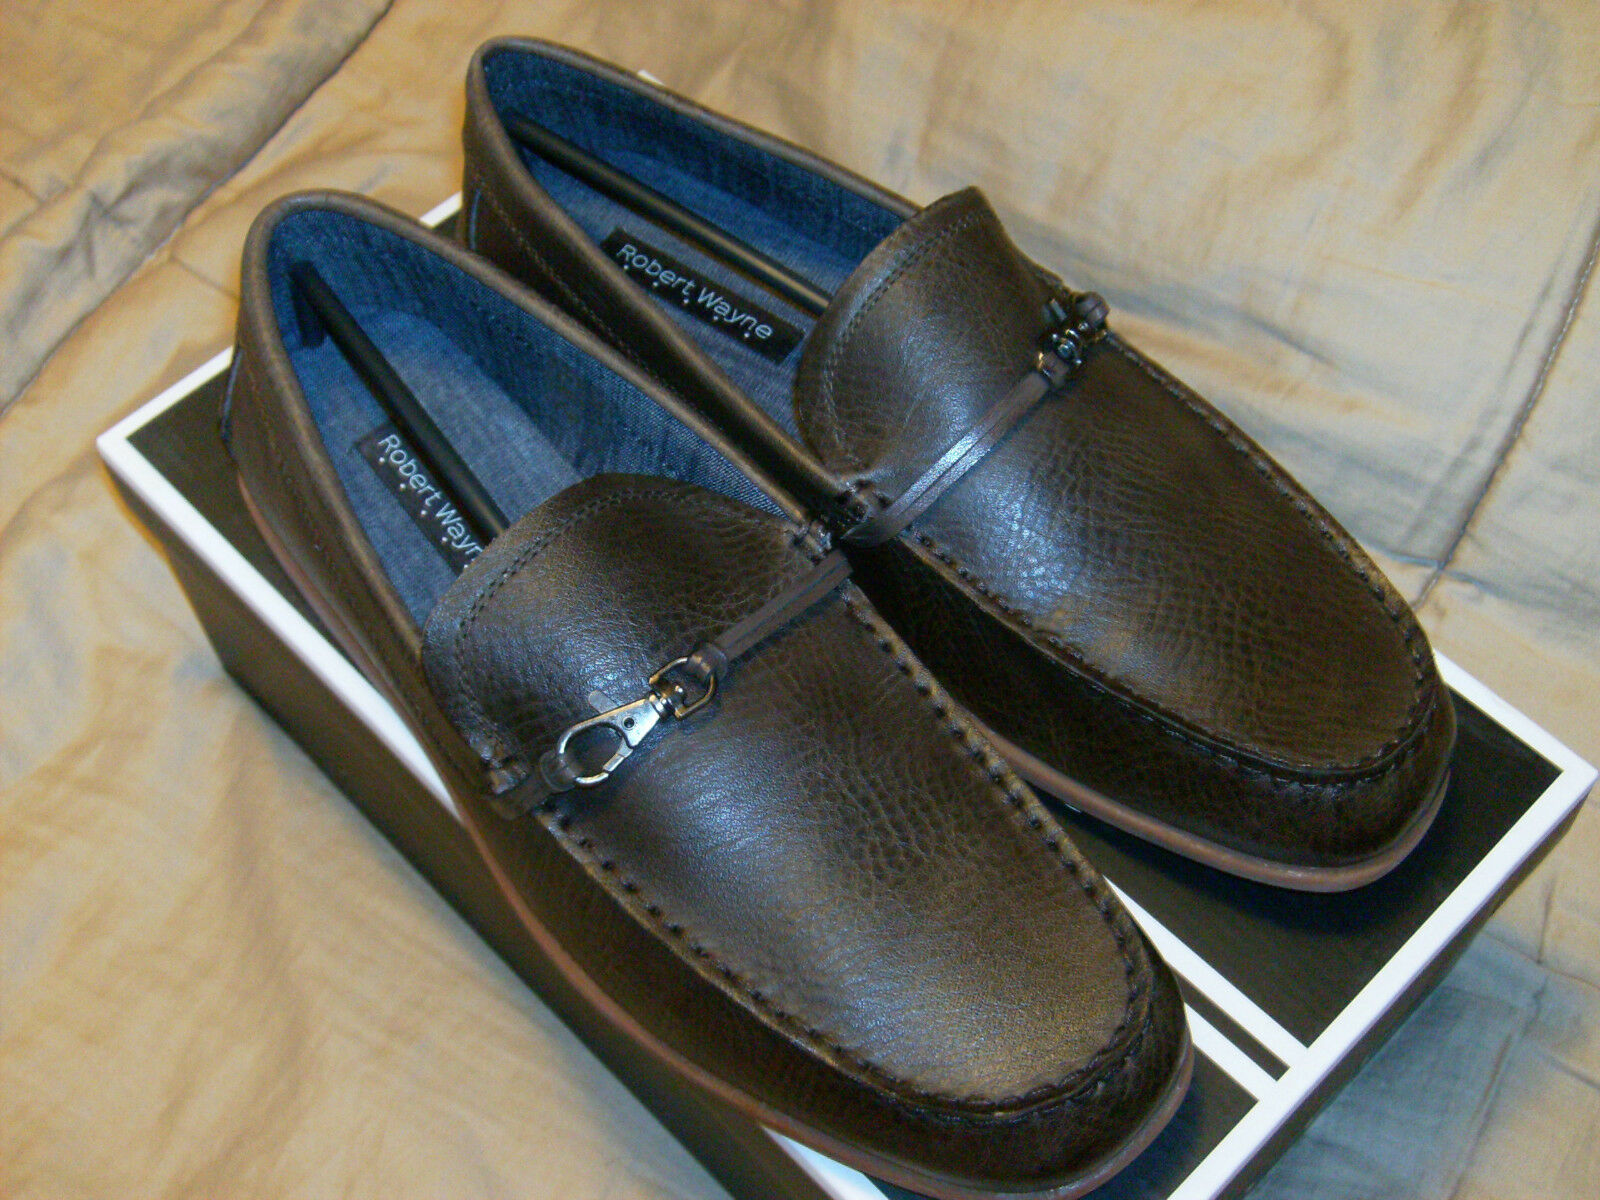 AUTHENTIC;Robert Wayne Mens Akira Brown Leather Slip On Loafer Dress shoes NWB